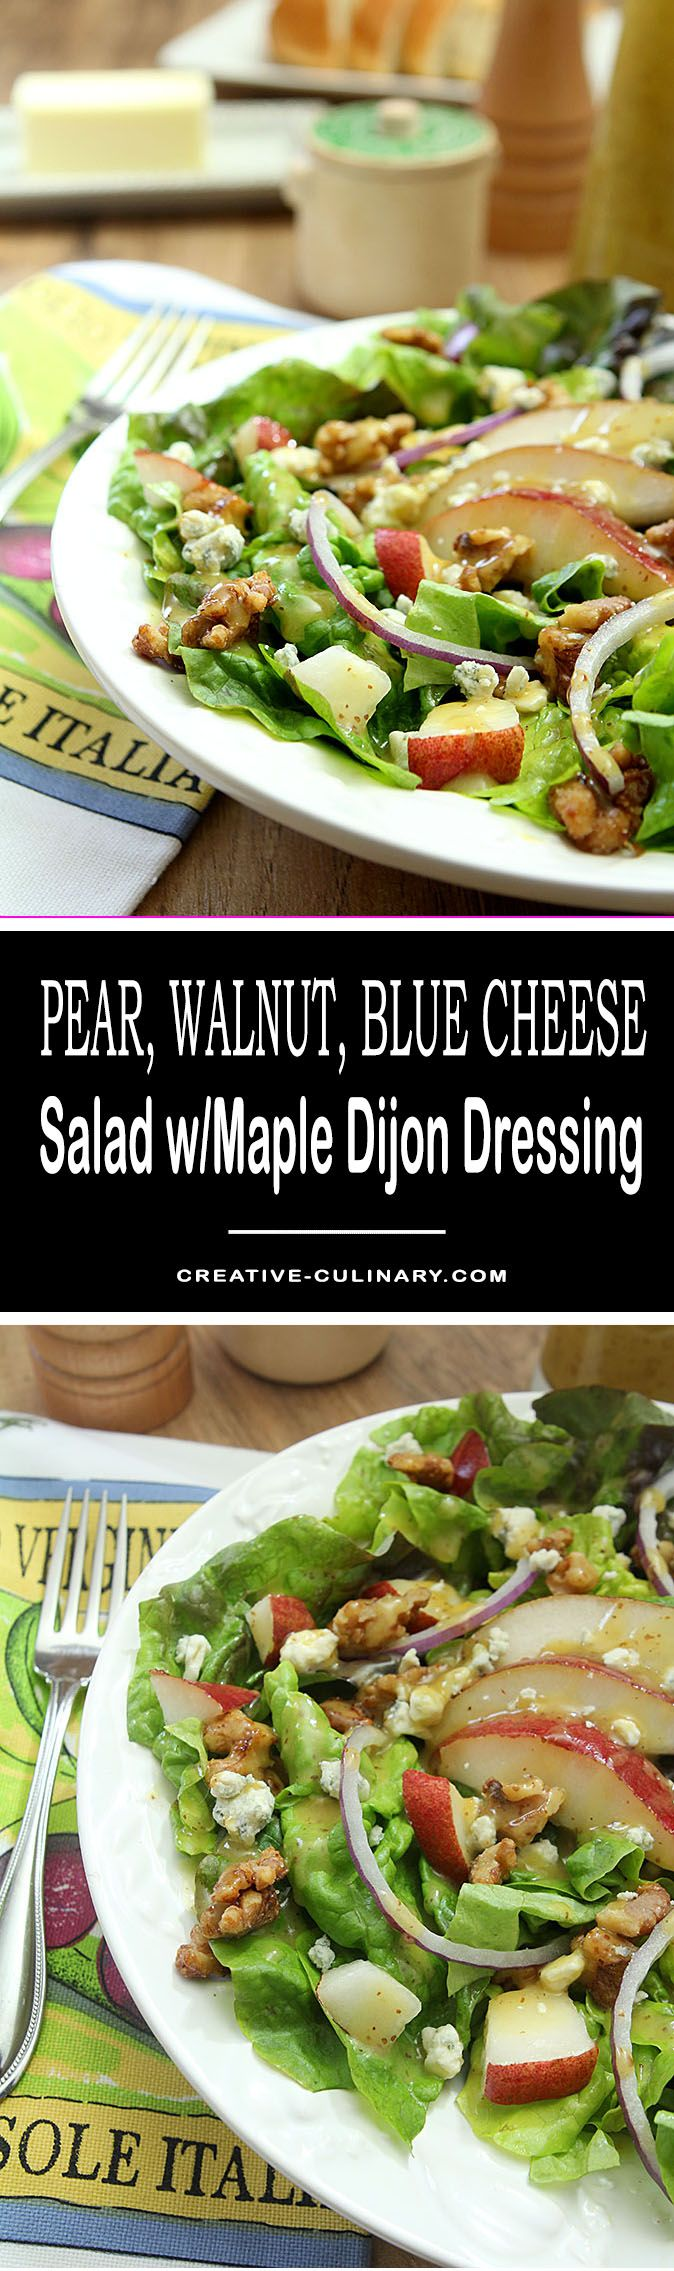 First discovered at Nordstrom's department store, this Pear, Walnut and Blue Cheese Salad with Maple Dijon Dressing is now one of our favorites to make at home and a great use for the pears that are available in cooler months; the perfect winter salad! via @creativculinary